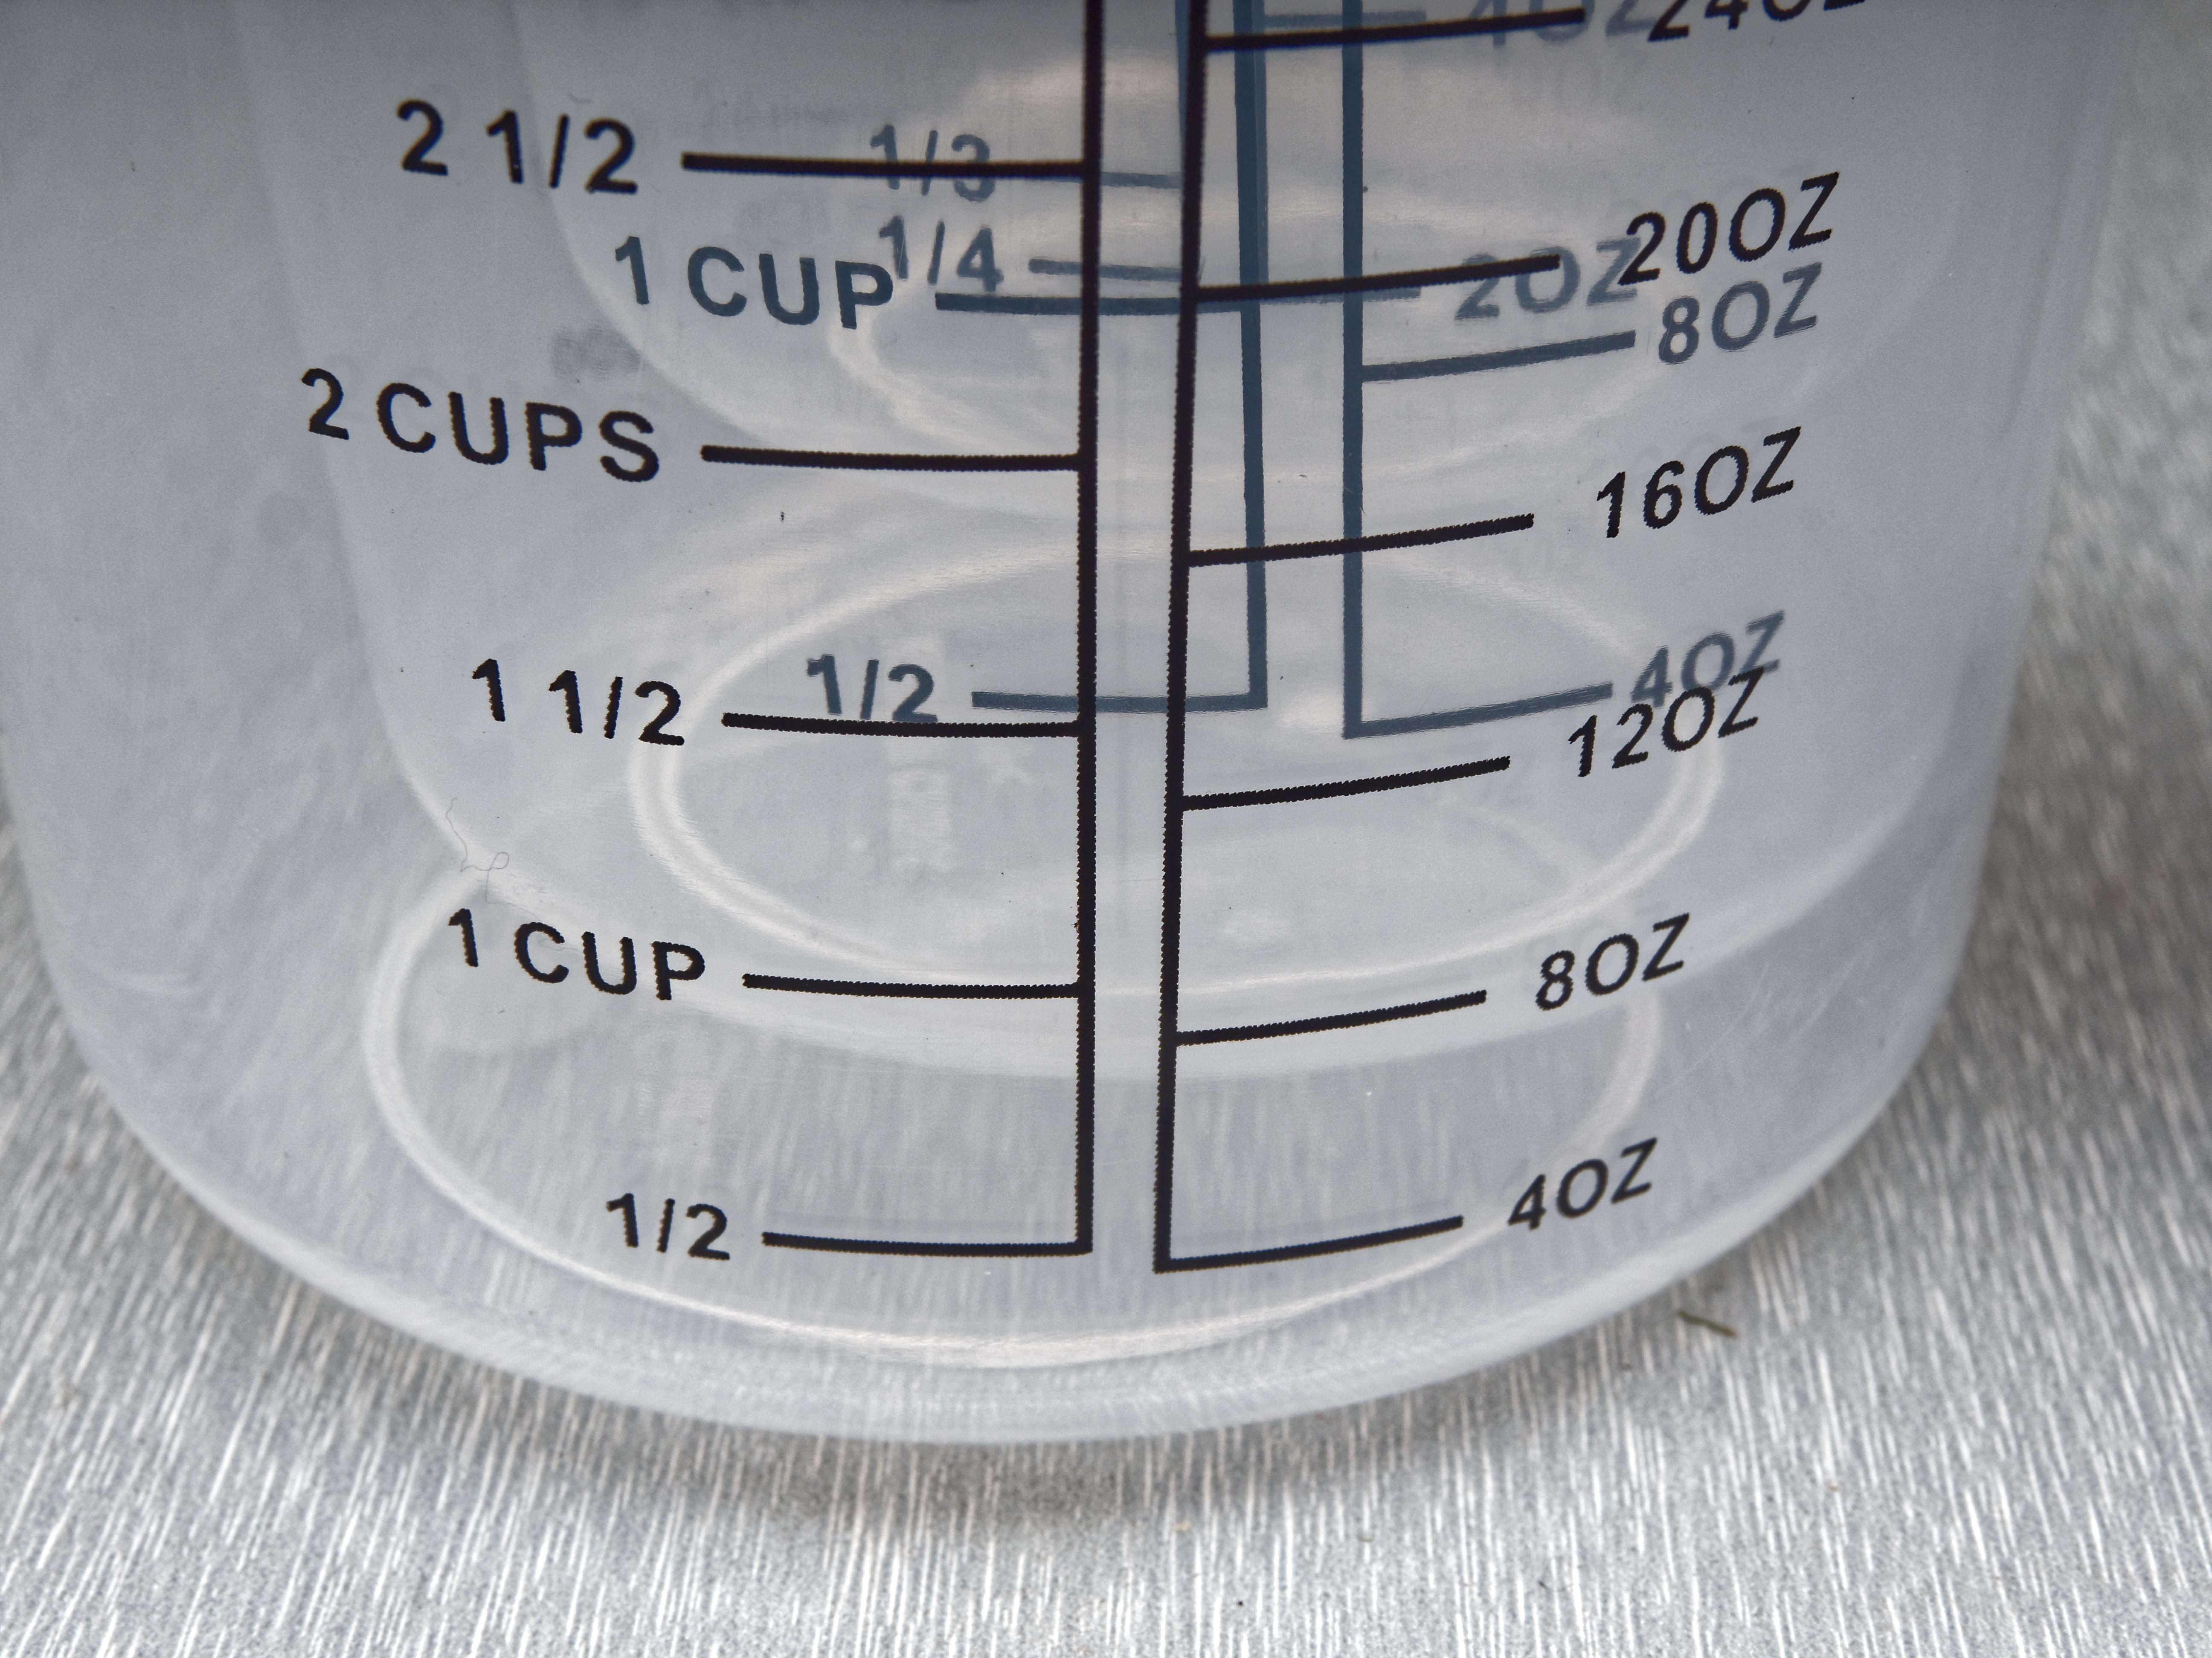 This should be Measuring-cup-2.jpeg.  Is it missing?